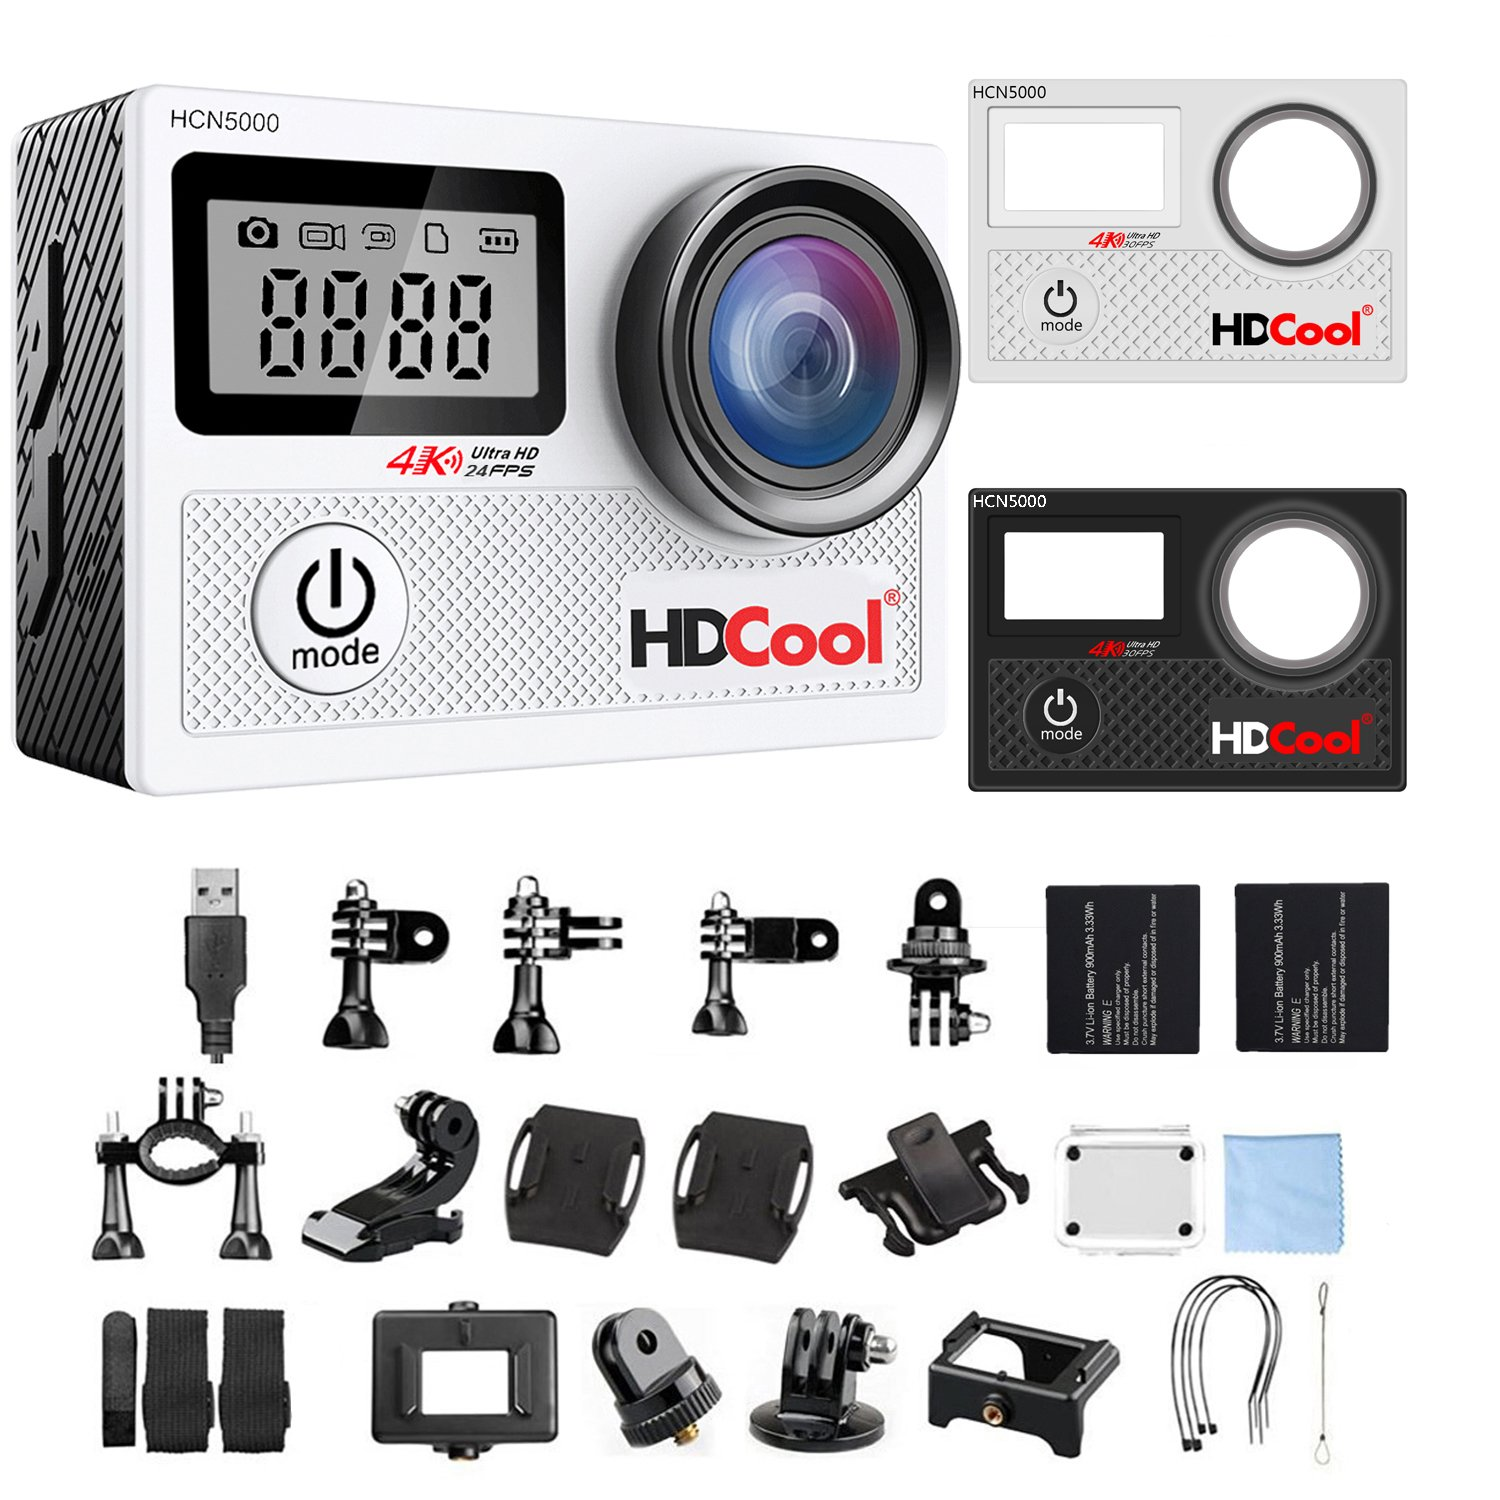 HDCool HCN5000 4K Action Camera 20MP 170 Degree Ultra Wide-Angle Lens Wi-Fi Waterproof Sport Camera, 2.0 Inch LCD Display with 0.96 Inch Front Screen, Include 2 Rechargeable 1050 mAh Batteries by HDCOOL